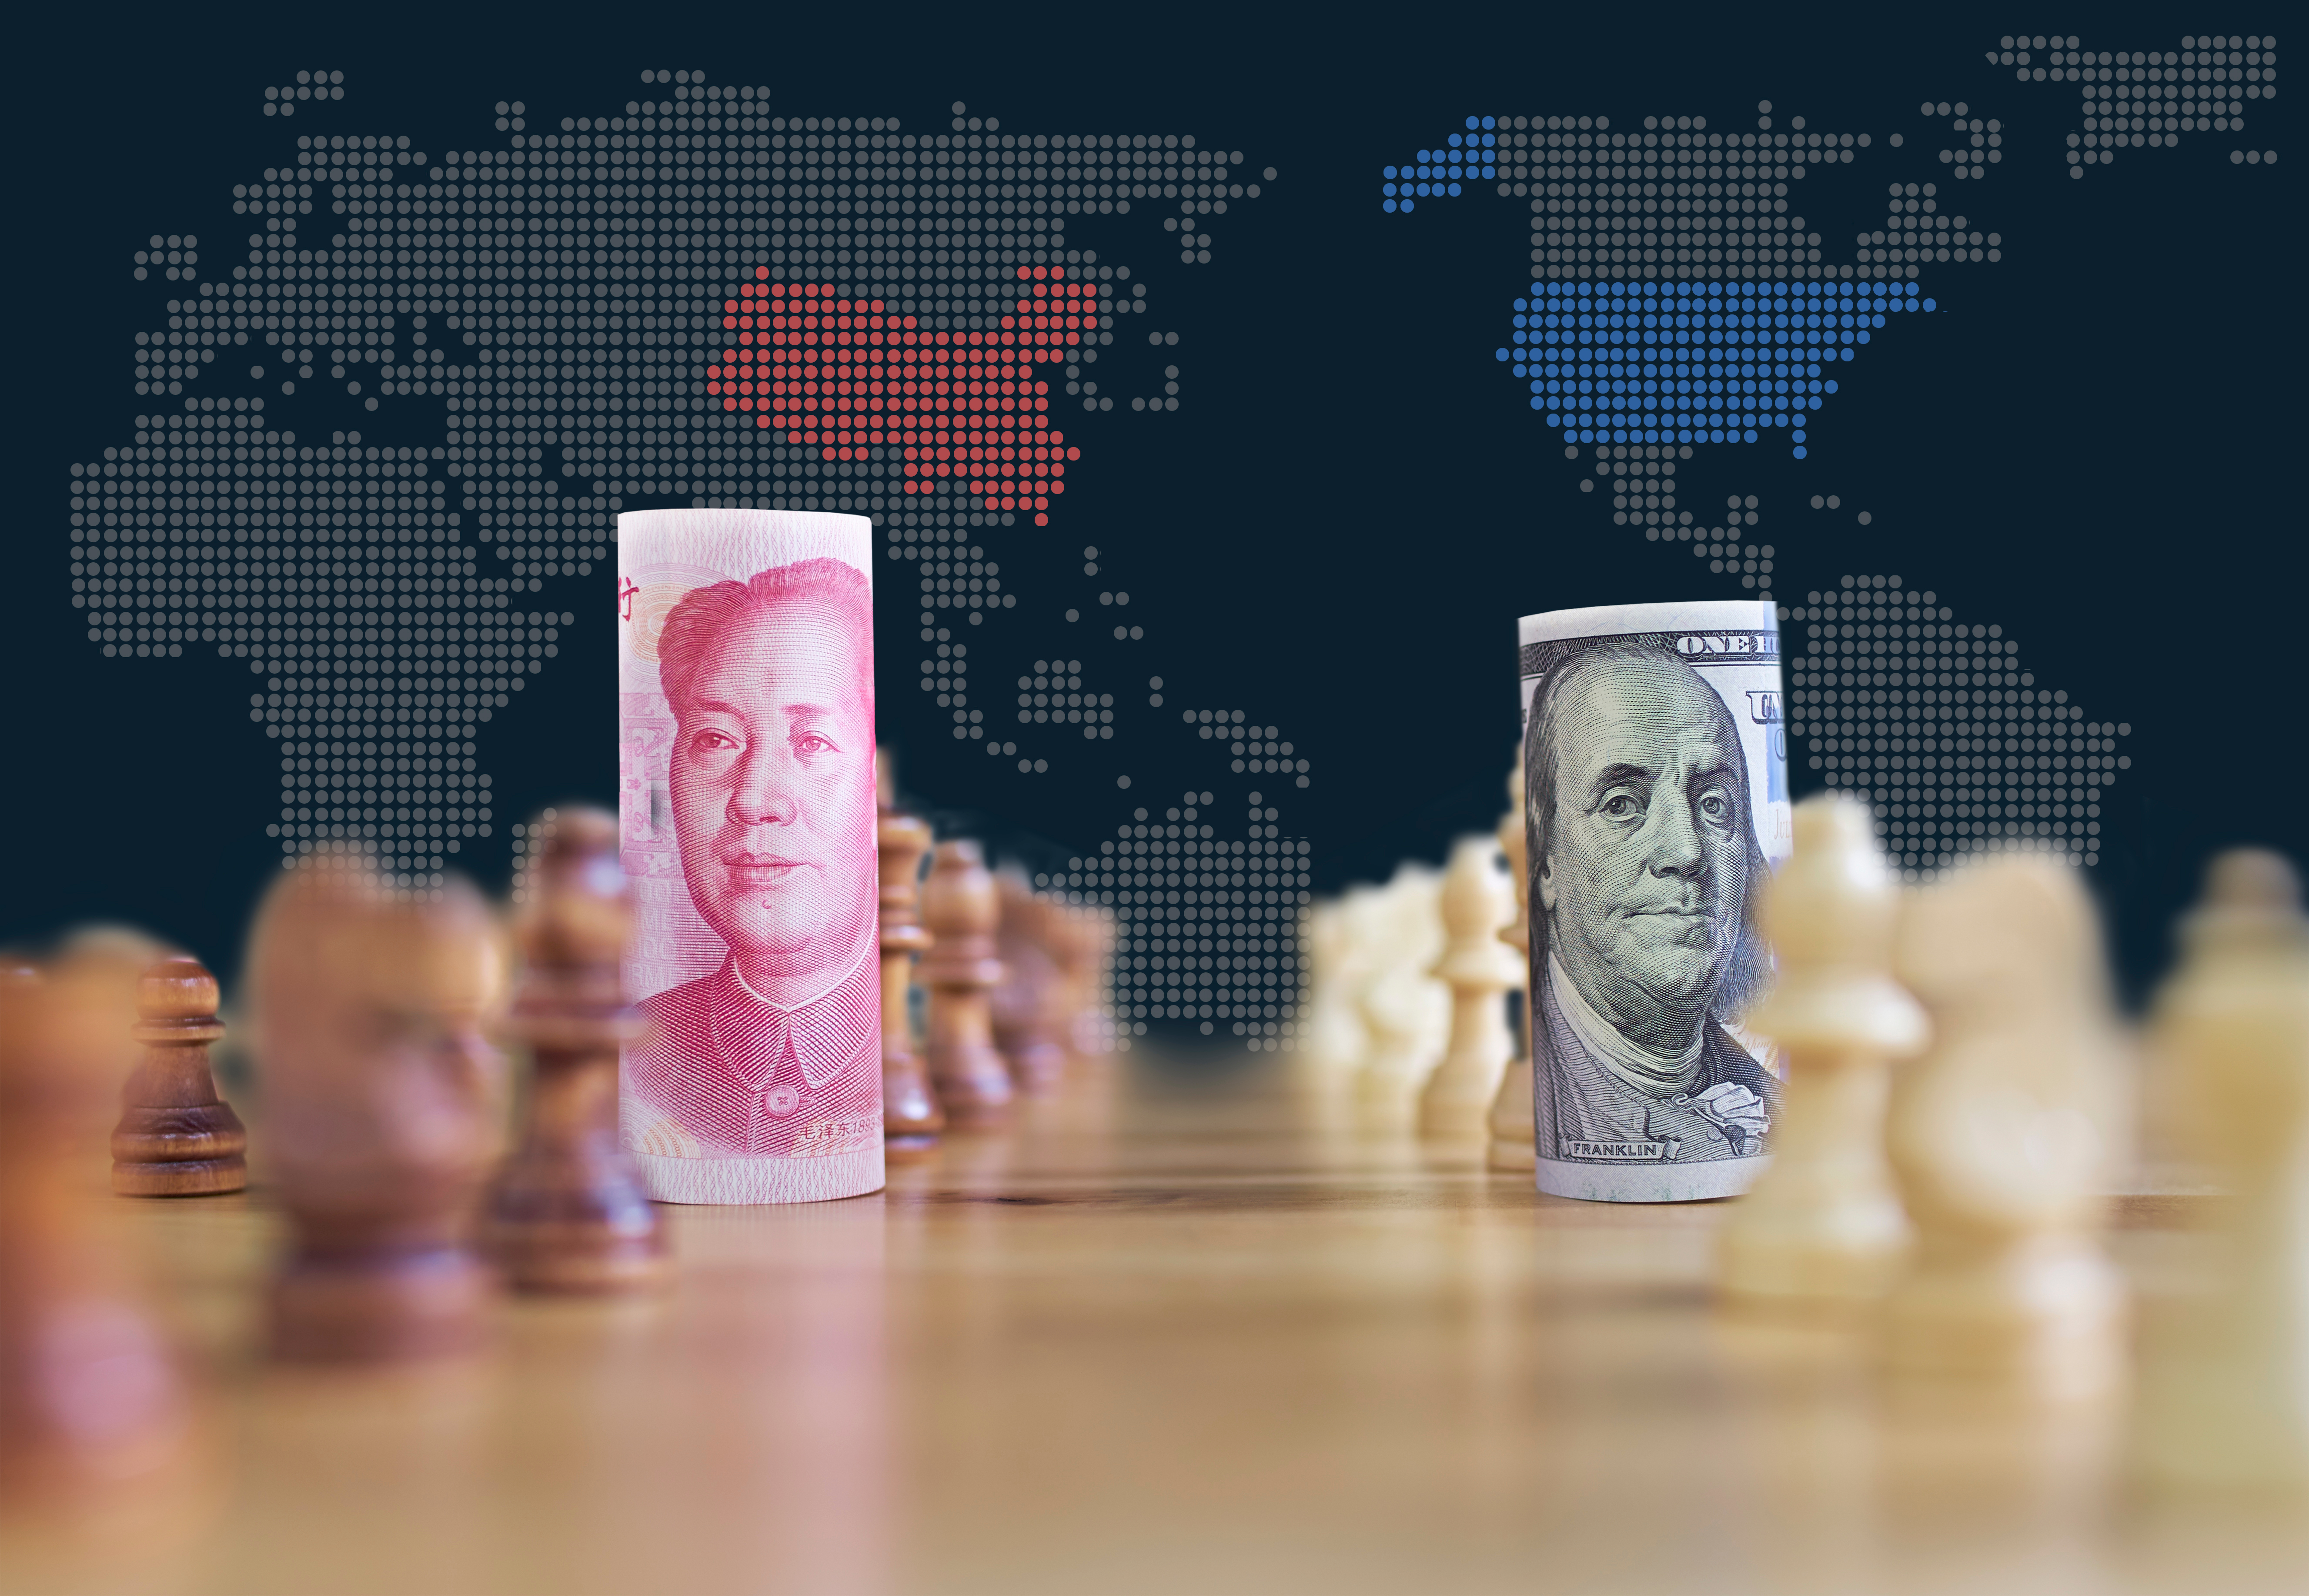 The tariff-fueled U.S.-China trade war could restructure supply chains for the long term, according to Mitsubishi UFJ Financial Group.